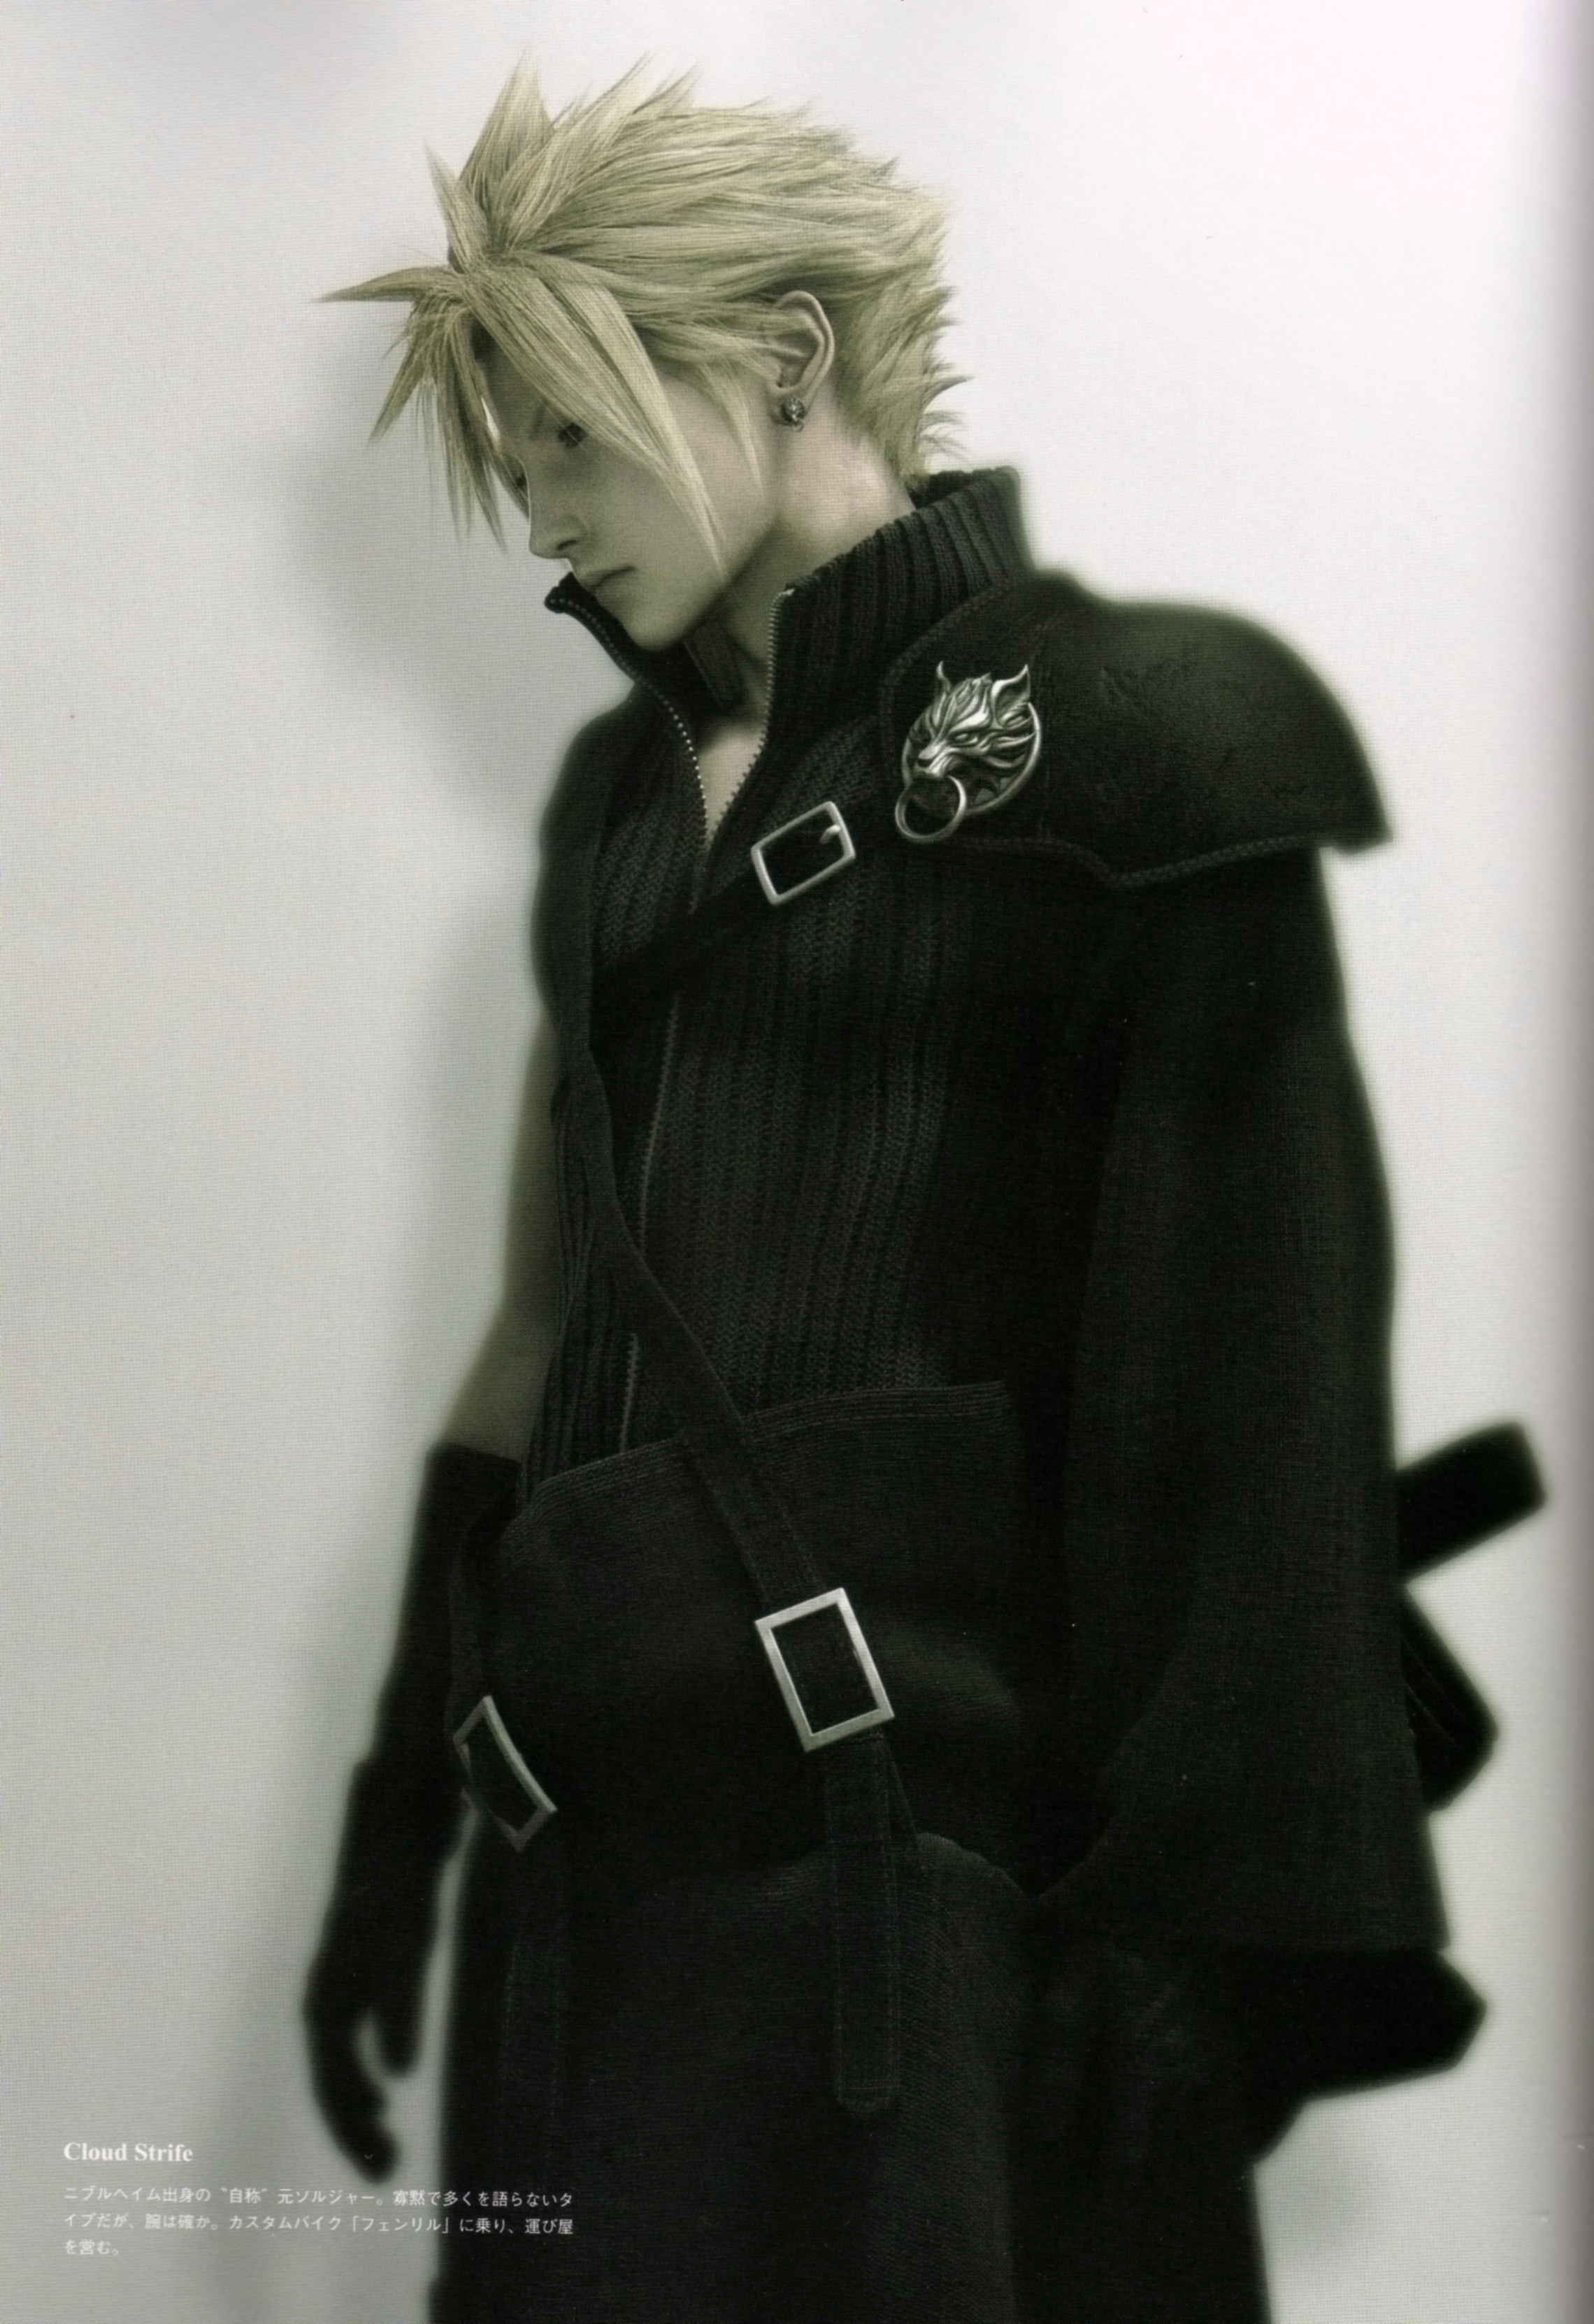 Cloud Strife Wallpaper And Scan Gallery Minitokyo